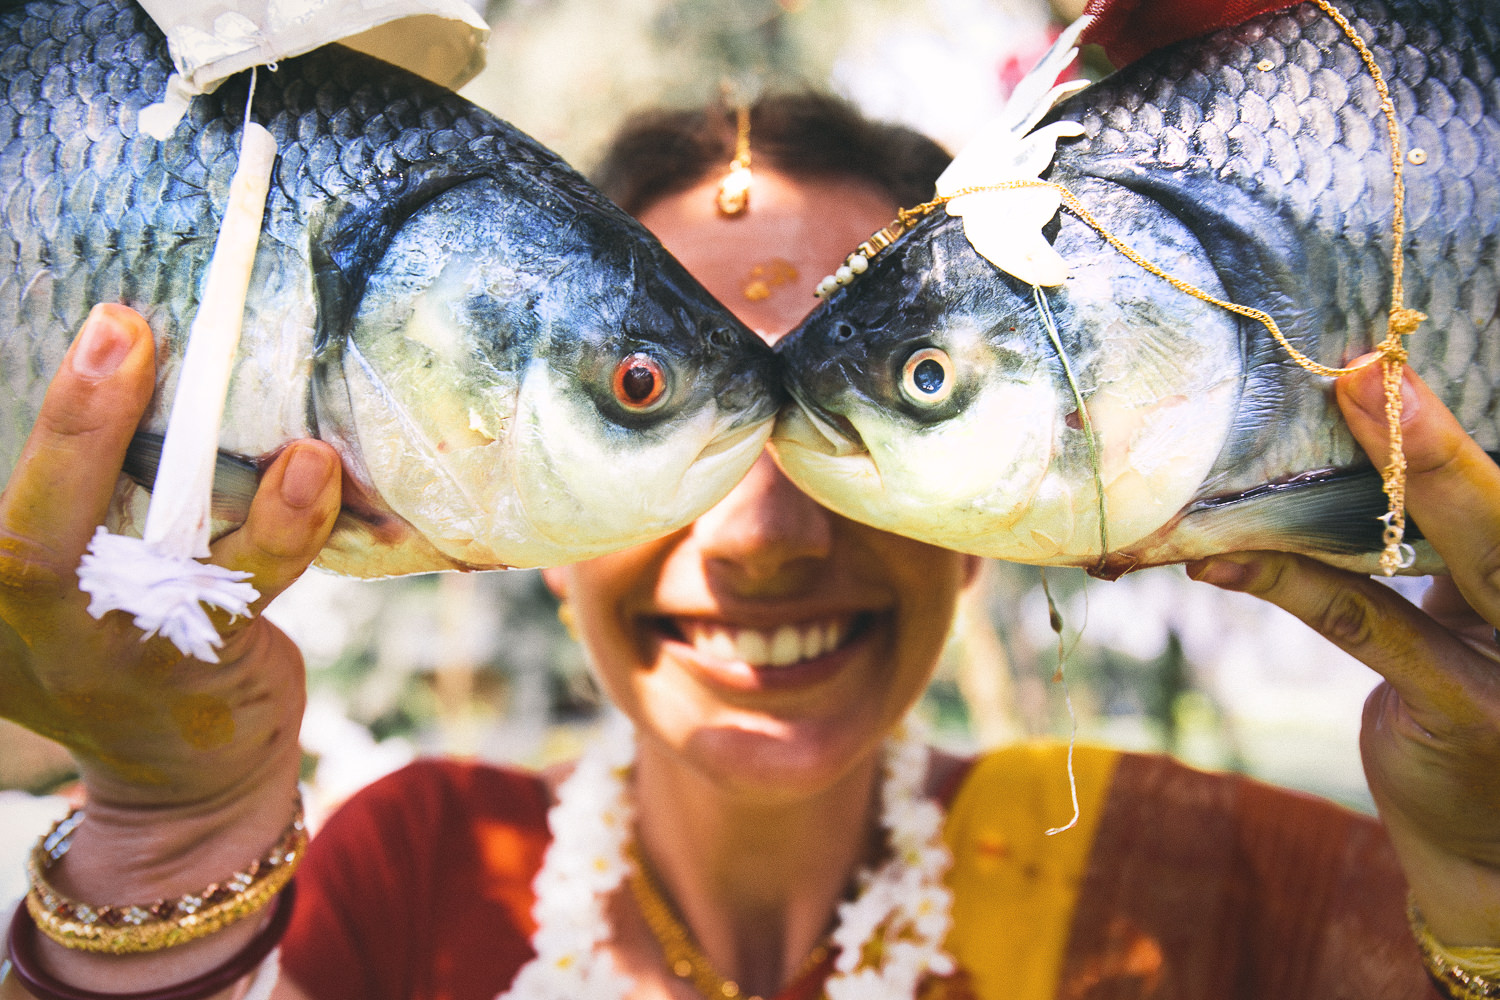 Fun photo of two fish in front of Indian bride, by Callaway Gable